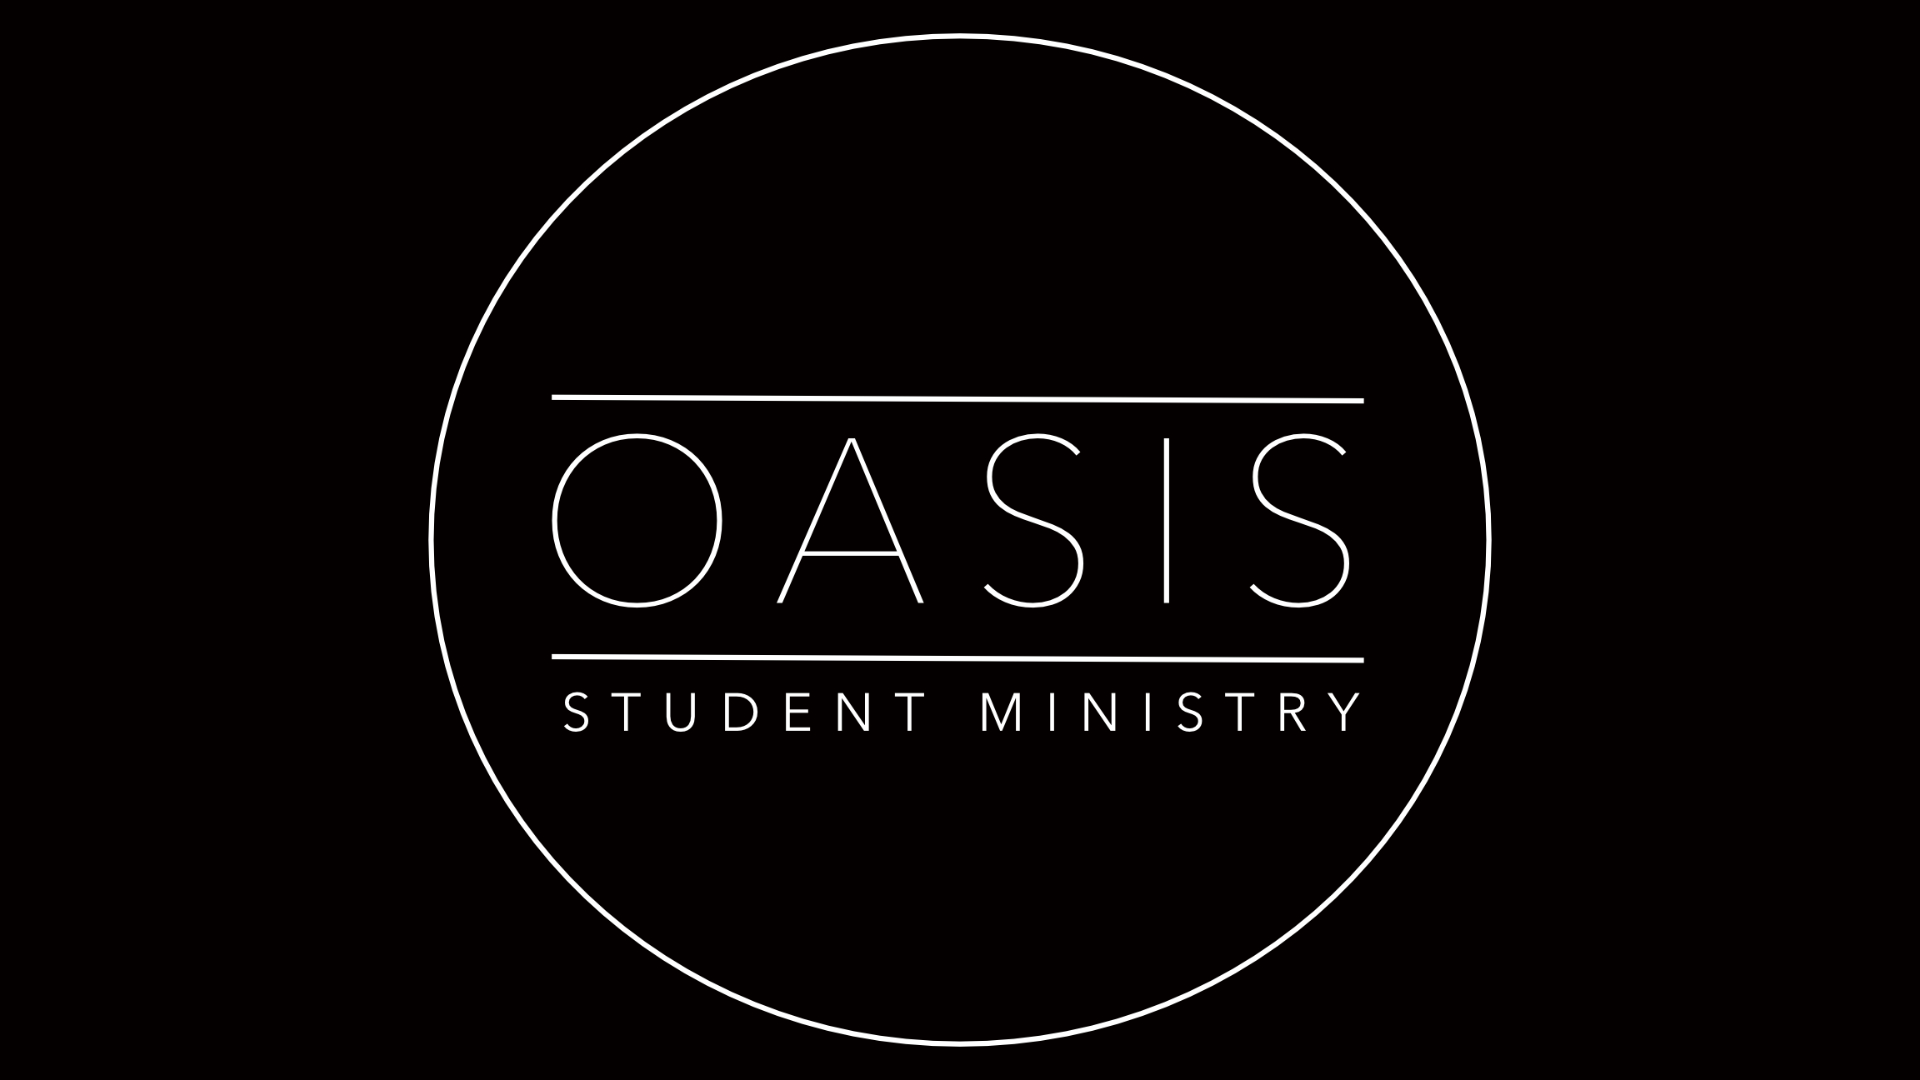 6th - 12th grade - The main event for your Middle & High School youth is called